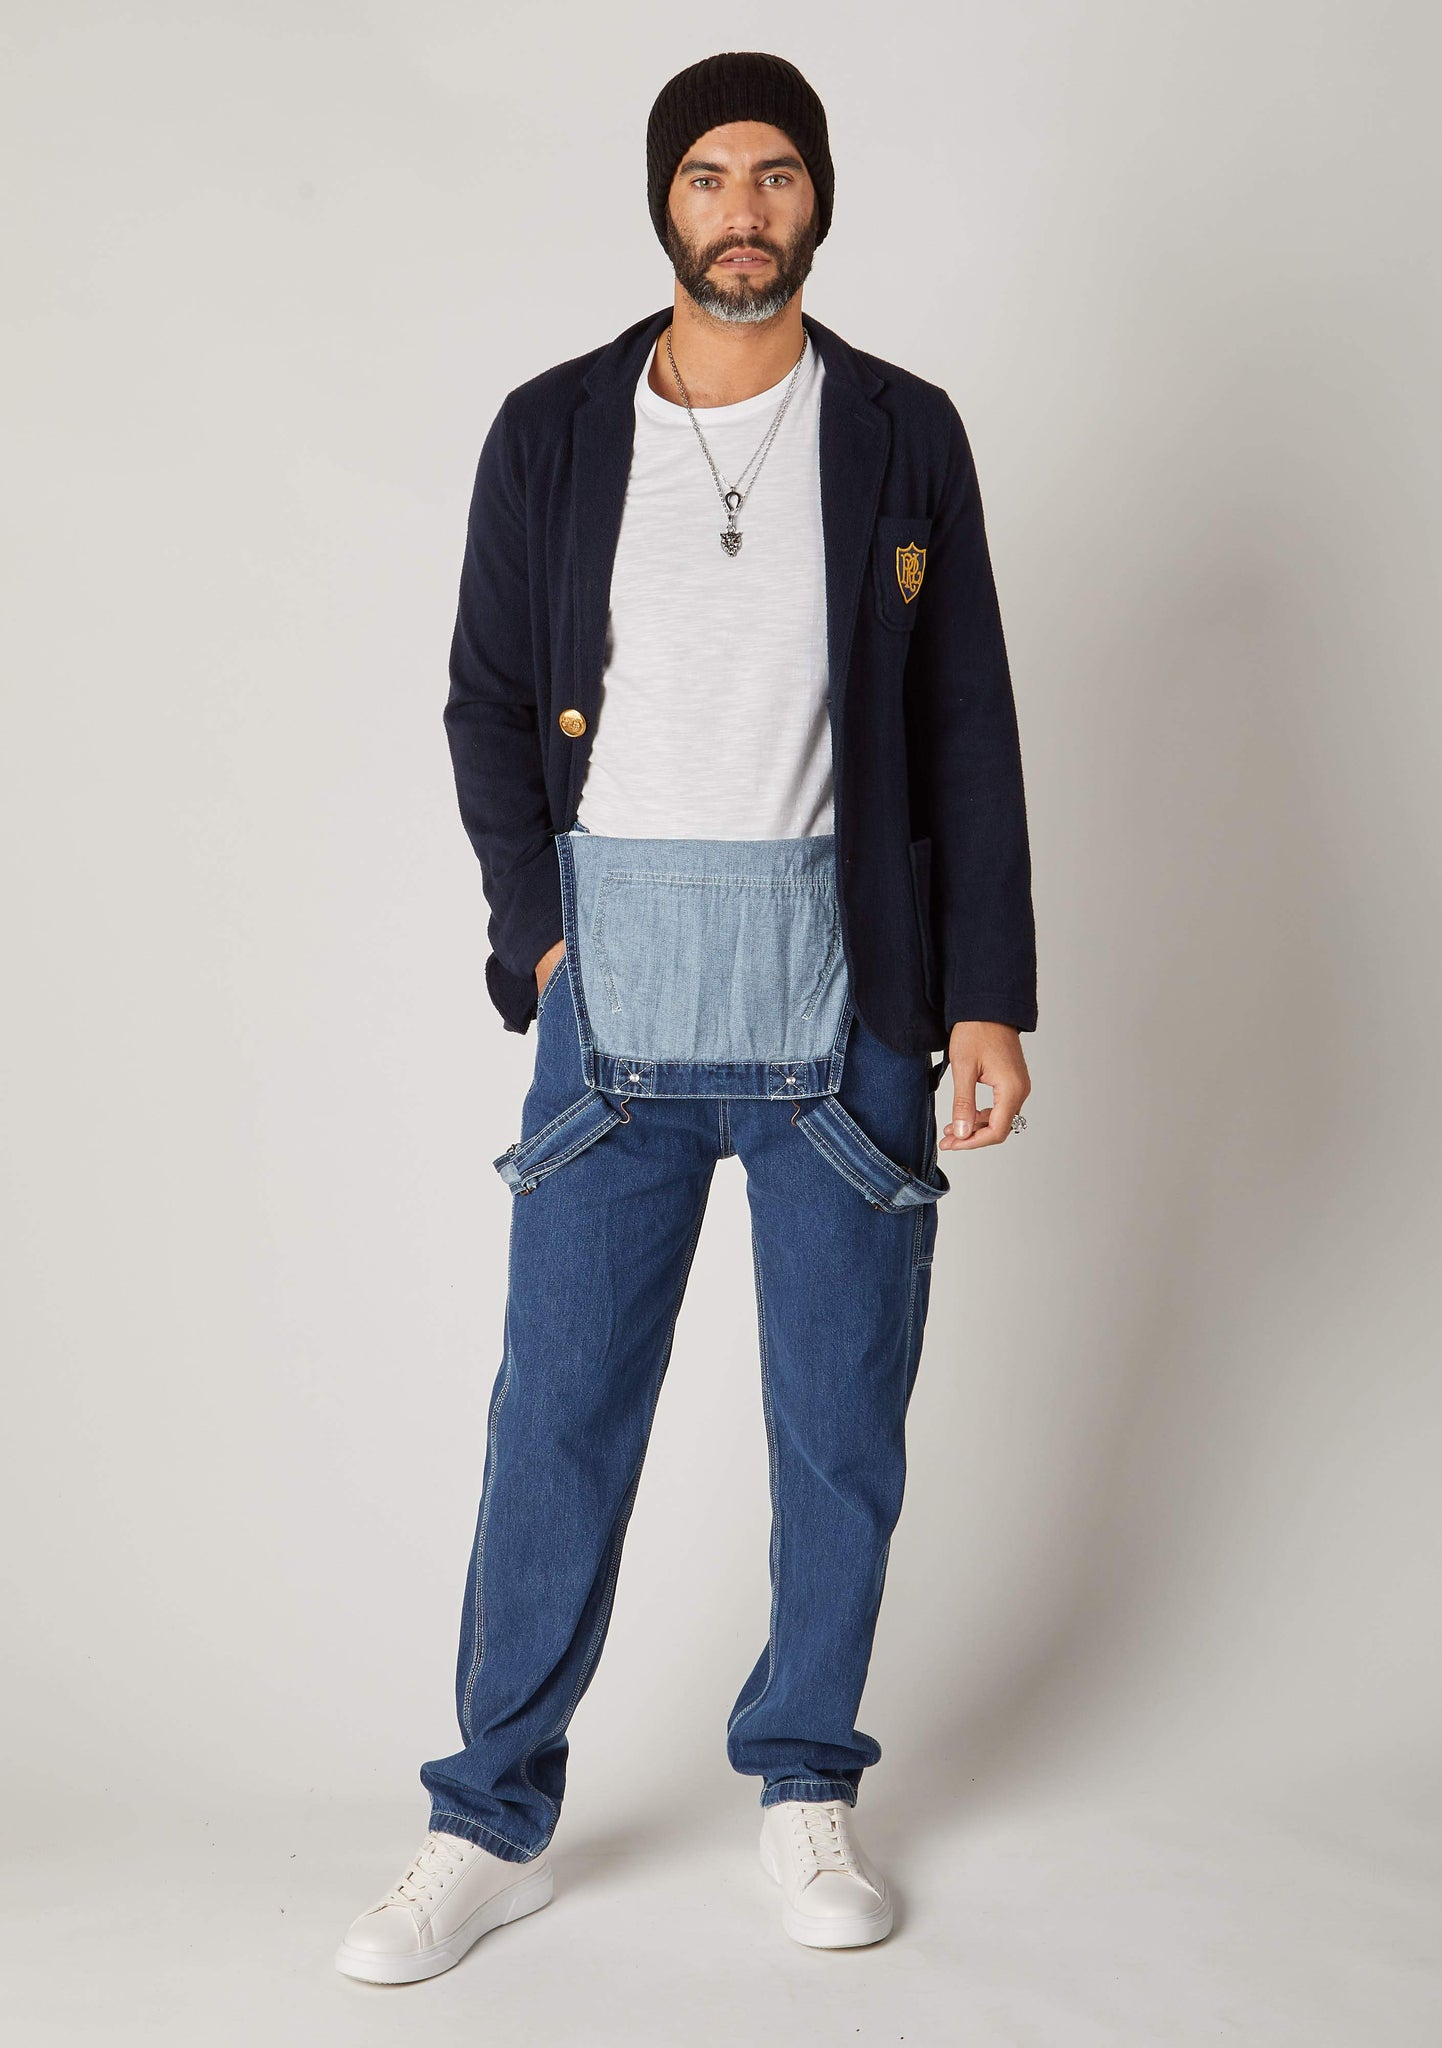 Front view of stonewash dungarees styled with bib-down revealing white t-shirt and bib lining.